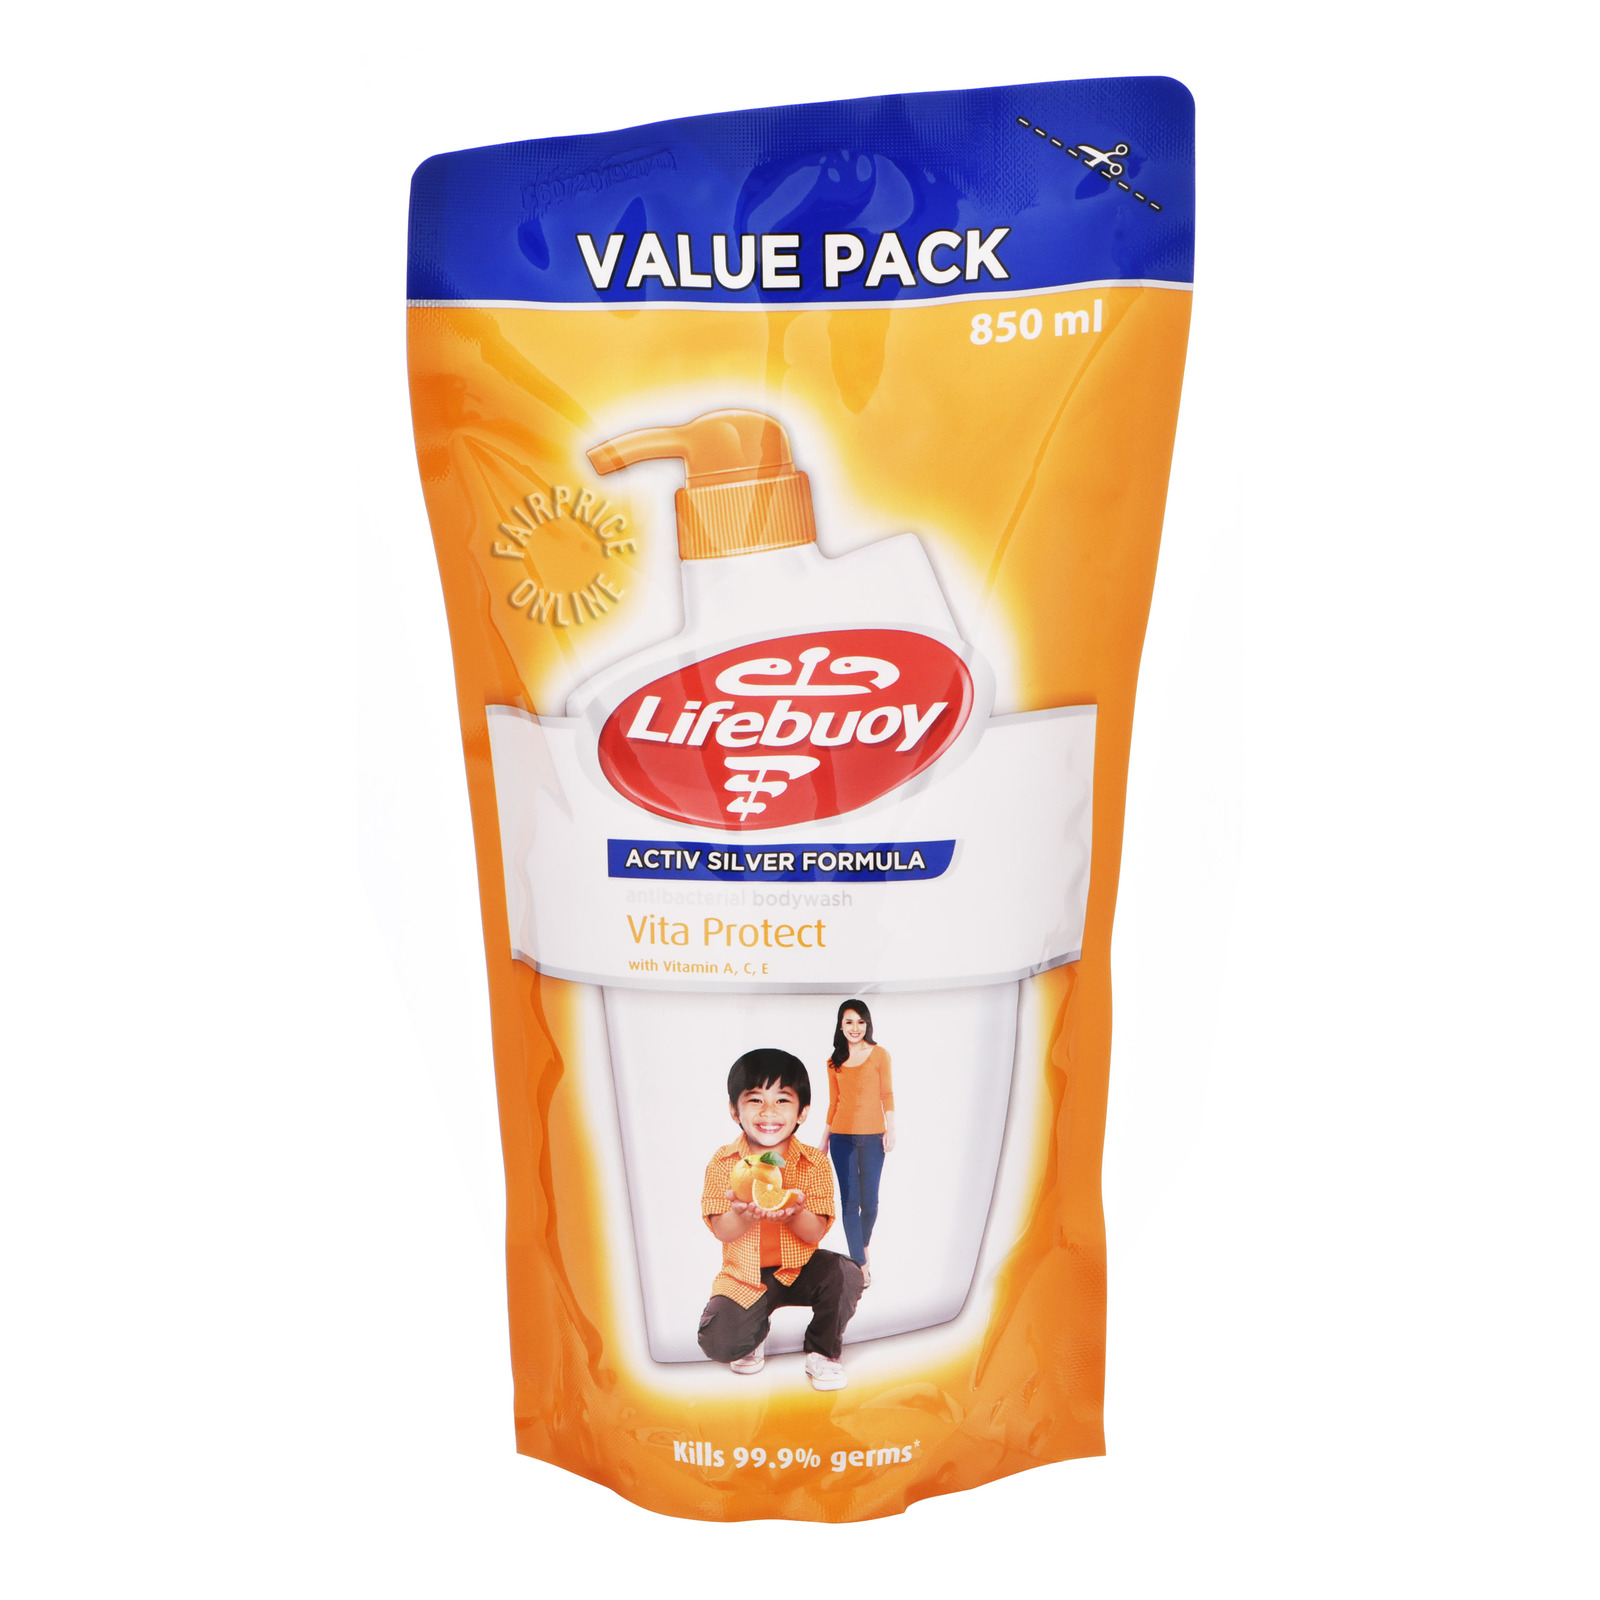 Lifebuoy Antibacterial Body Wash Refill - Vita Protect